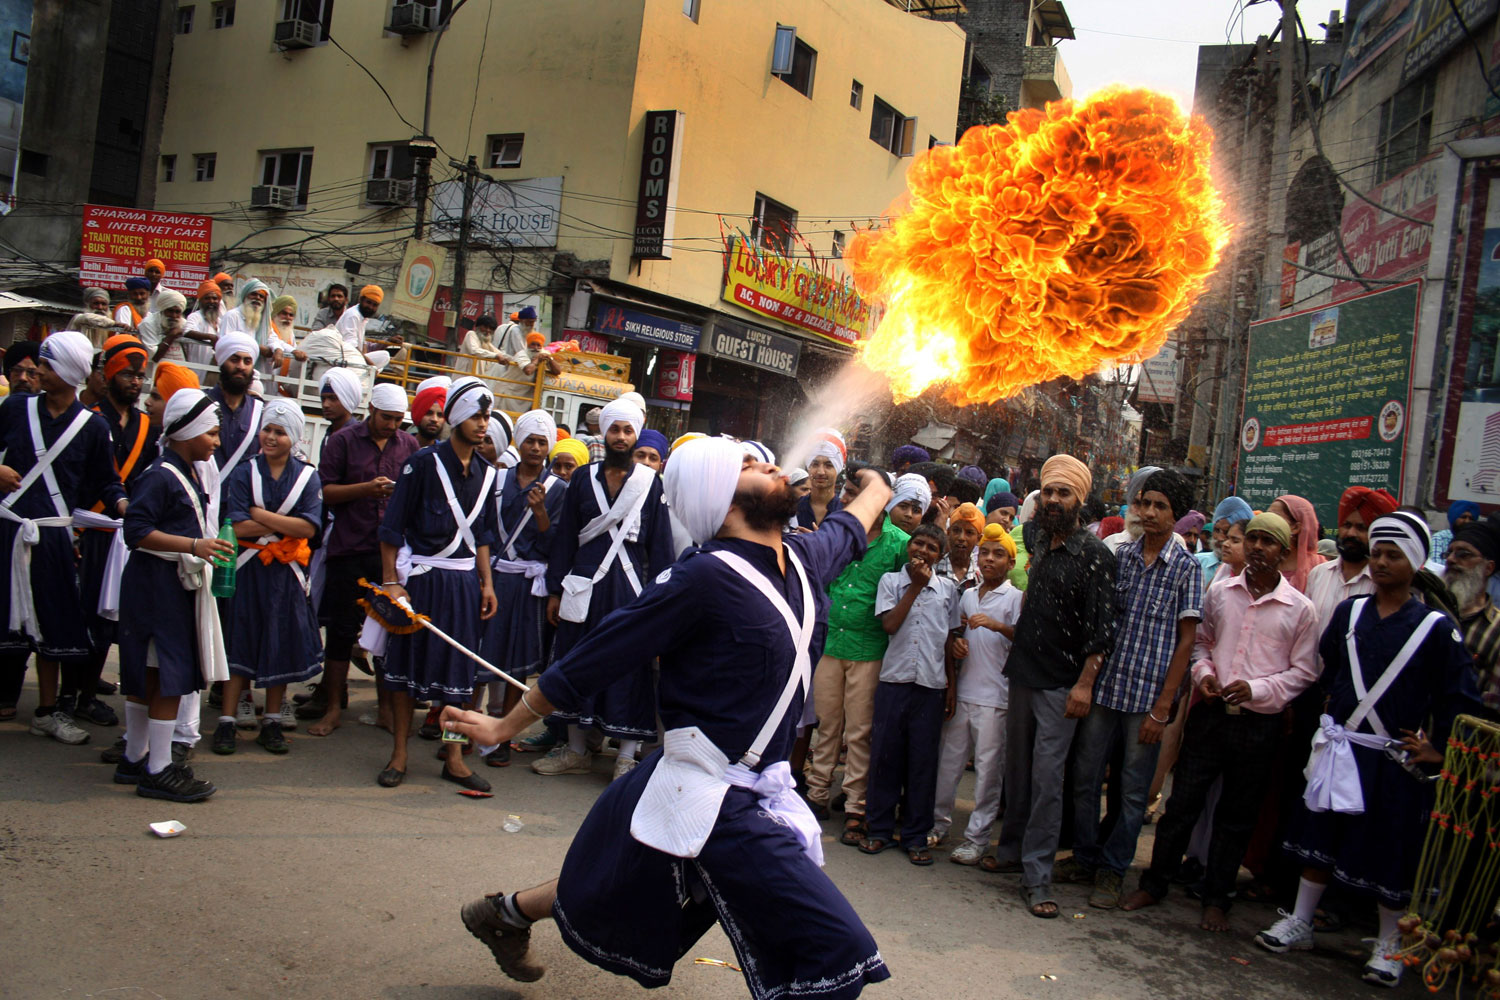 Oct. 8, 2013. A Sikh youth breathes fire during a religious procession on the eve of Guru Ram Das's birthday in Amritsar, India. Ram Das was the fourth of the ten gurus of Sikhism.